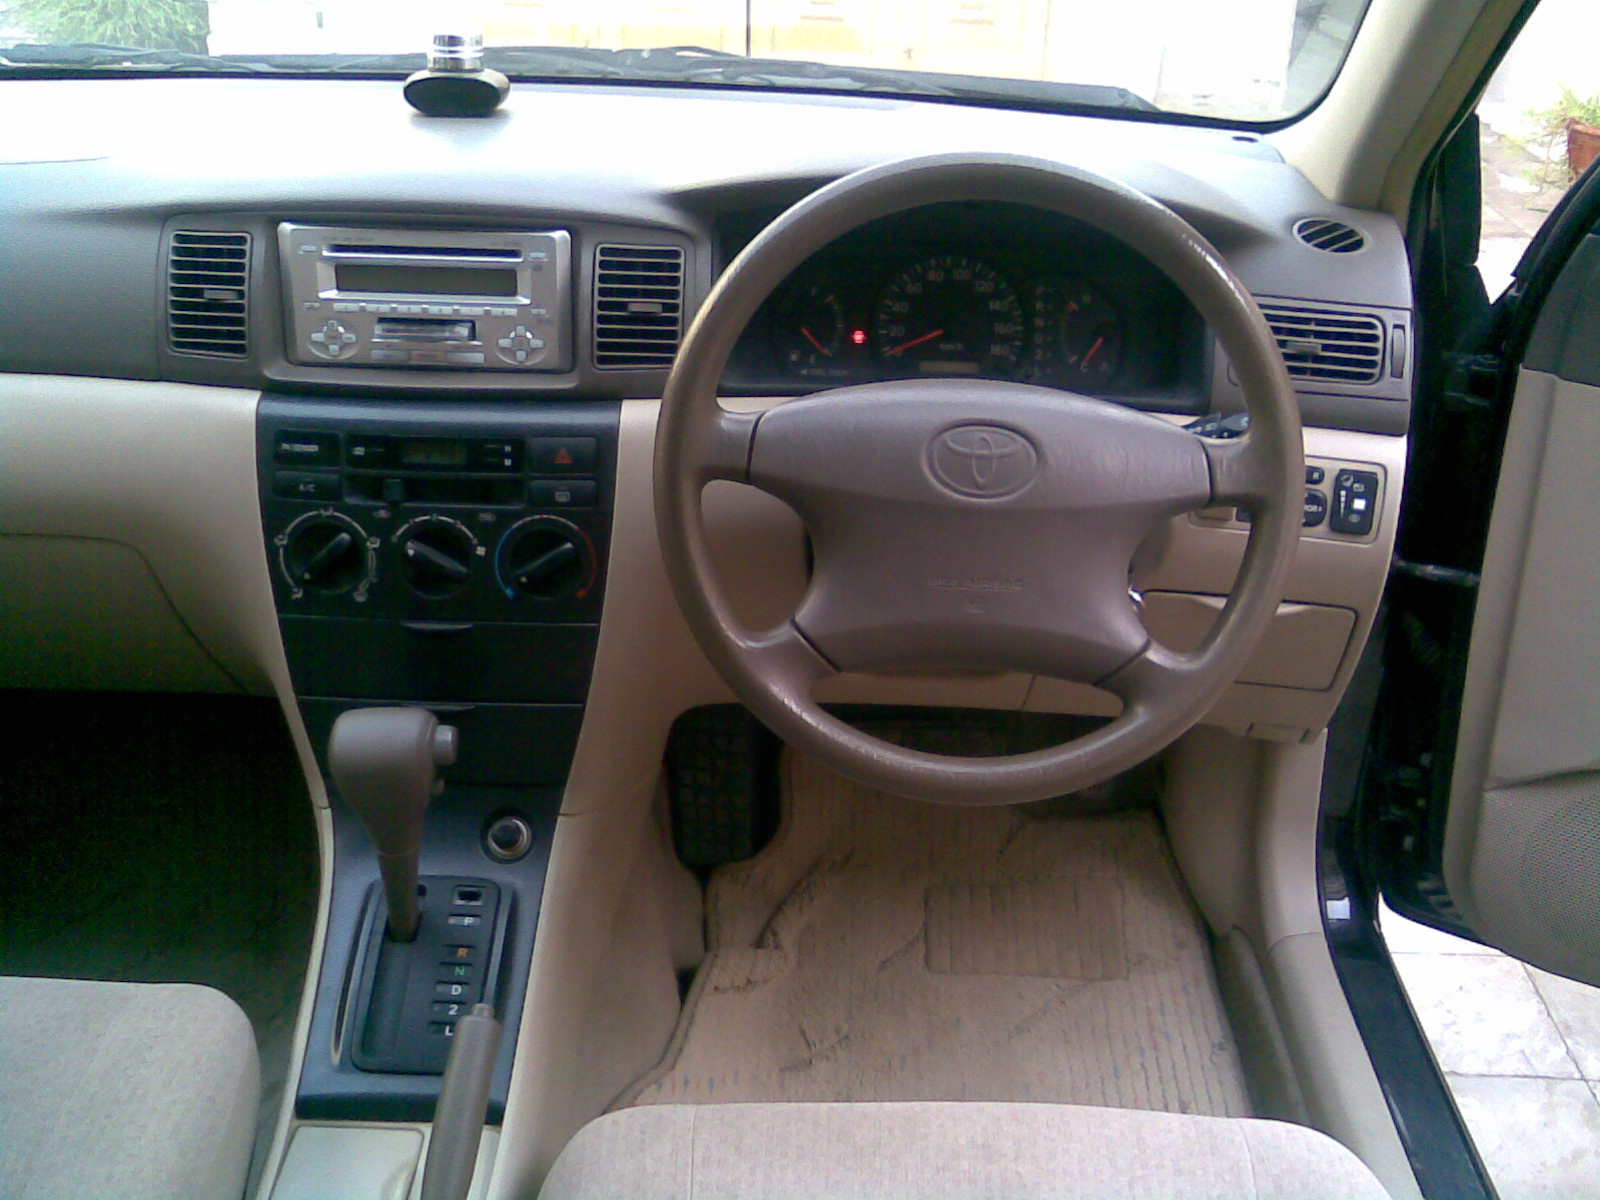 Toyota corolla 2003 of wasx member ride 15199 pakwheels for Toyota corolla 2003 interior